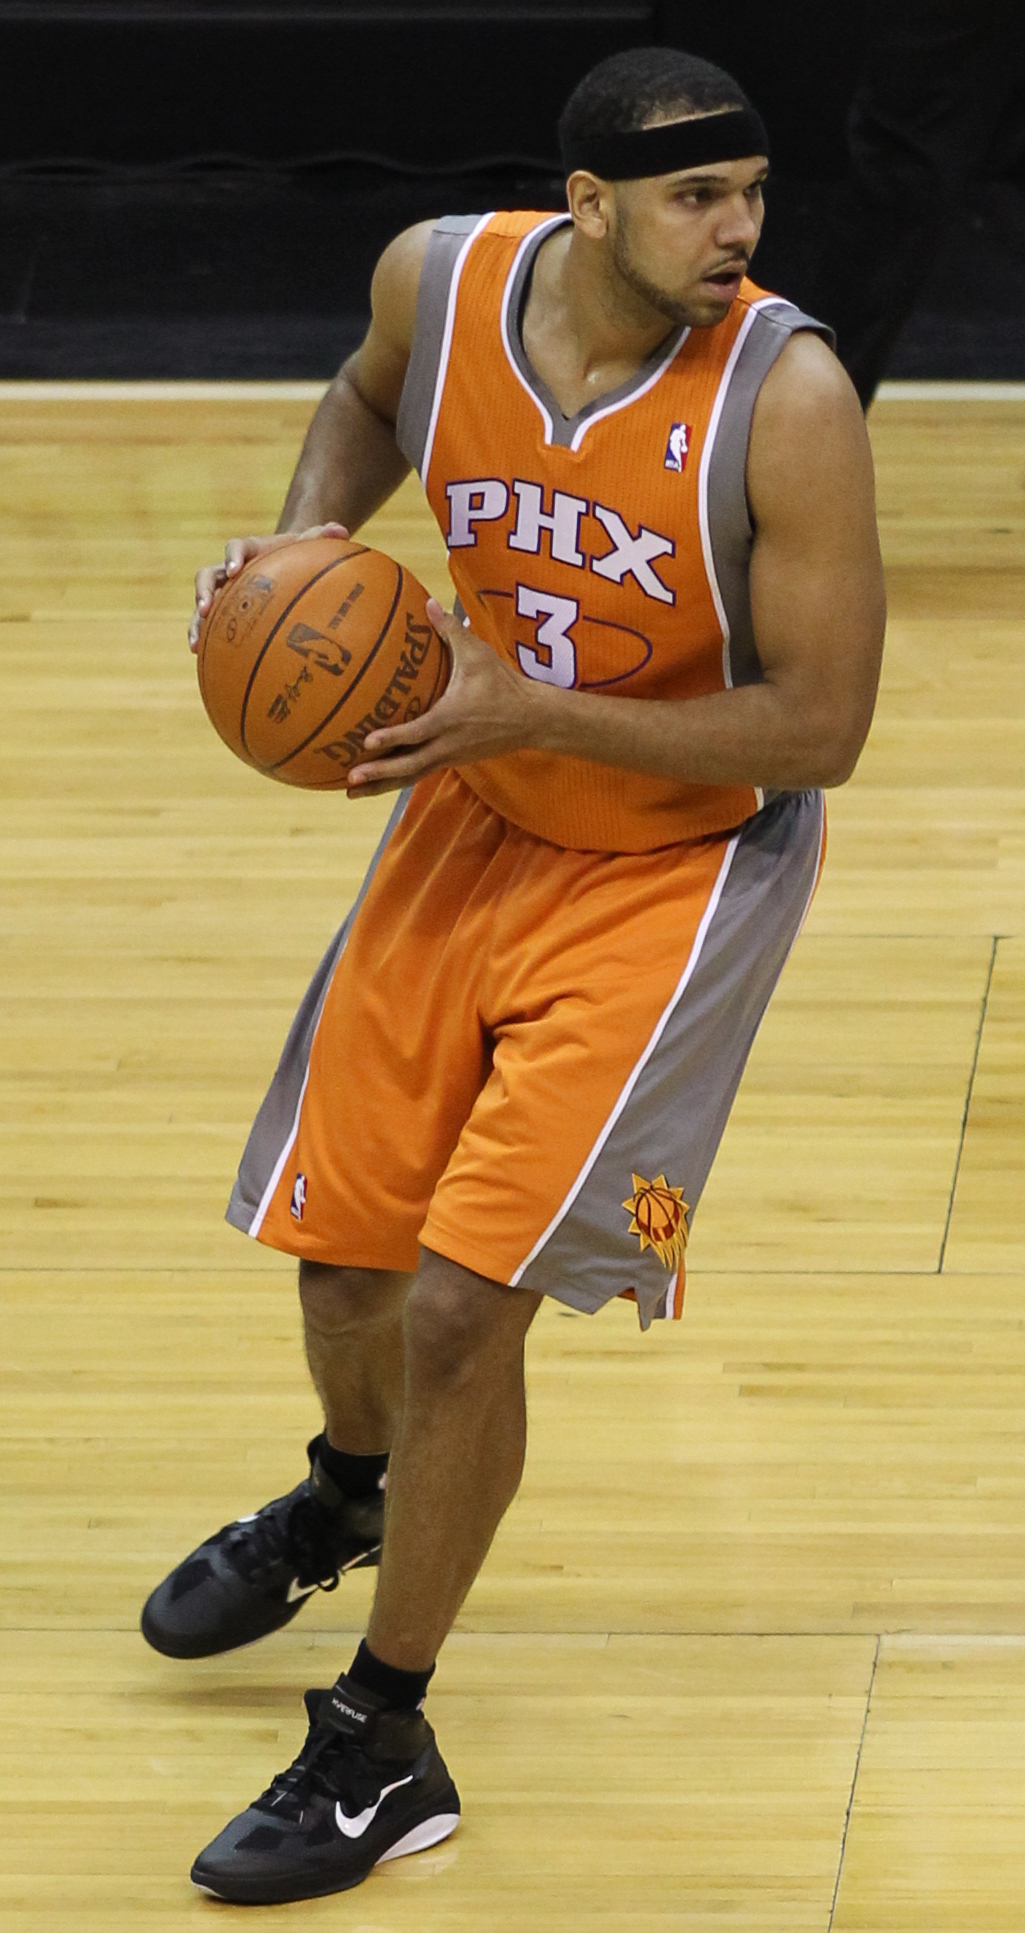 jared dudley  u2013 wikipedia